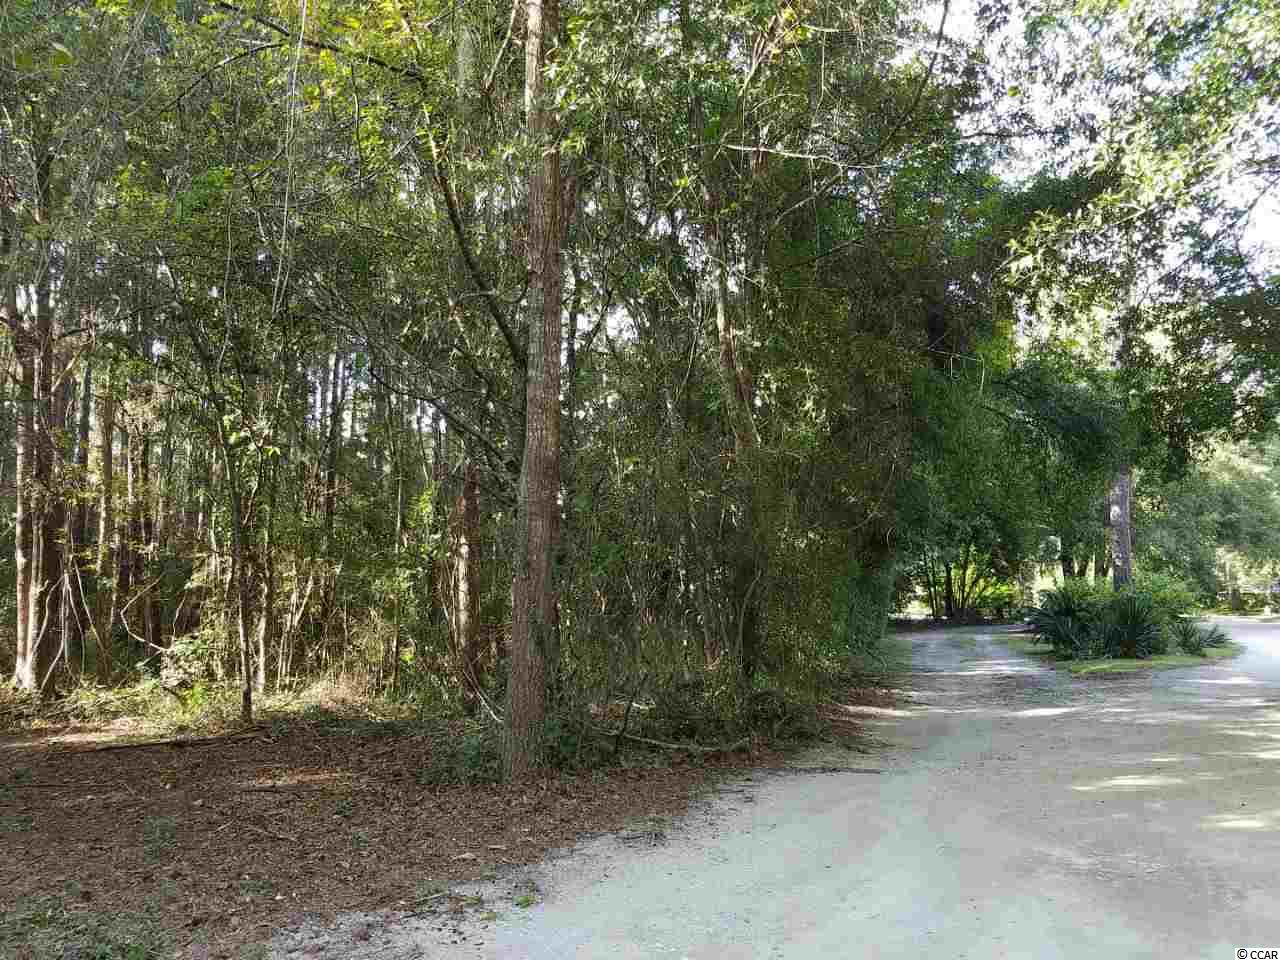 """Homesite - .62 Acres - in small, private  neighborhood, with some homes located creekfront and overlooking The Pelican Inn on Pawleys Island.  This neighborhood has primary and 2nd homes and is the former site of the old Kaminski Estate. This is the largest residential lot available in the highly desirable """"East of Hwy 17, Pawleys Island"""" area.  Great location, away from the hustle and bustle, yet convenient to grocery stores, restaurants, shops, and all that Pawleys has to offer.  You can ride your bike to the beach and creek on Pawleys Island! Pawleys Island Woods is a quiet area where you can hear the ocean waves, and see a vast assortment of shorebirds found in our coastal habitats."""